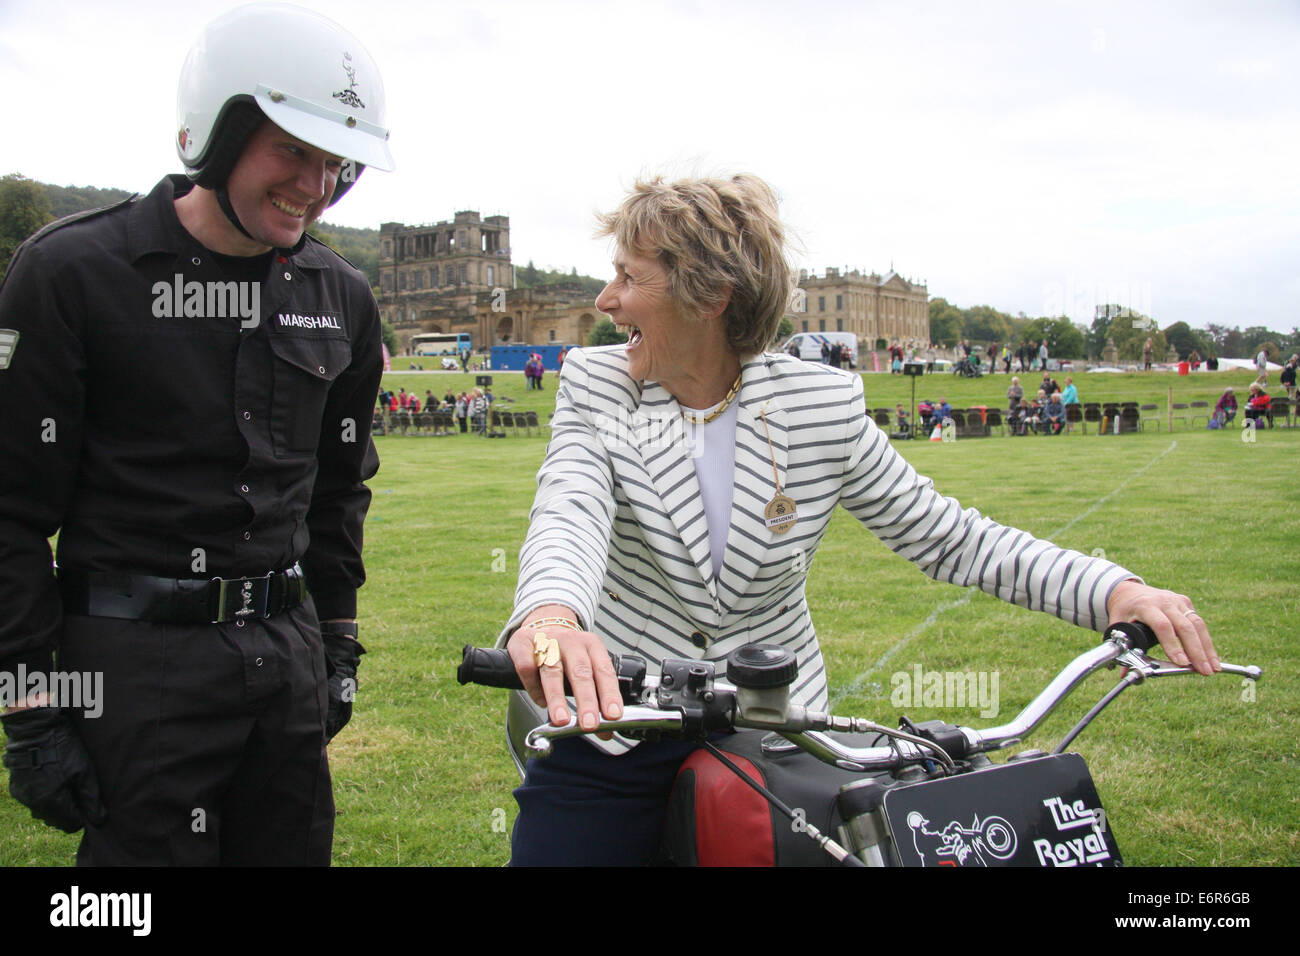 Peak District, Derbyshire, UK.  29 August 2014. The Duchess of Devonshire tries out a 750cc Triumph motorcycle belonging - Stock Image